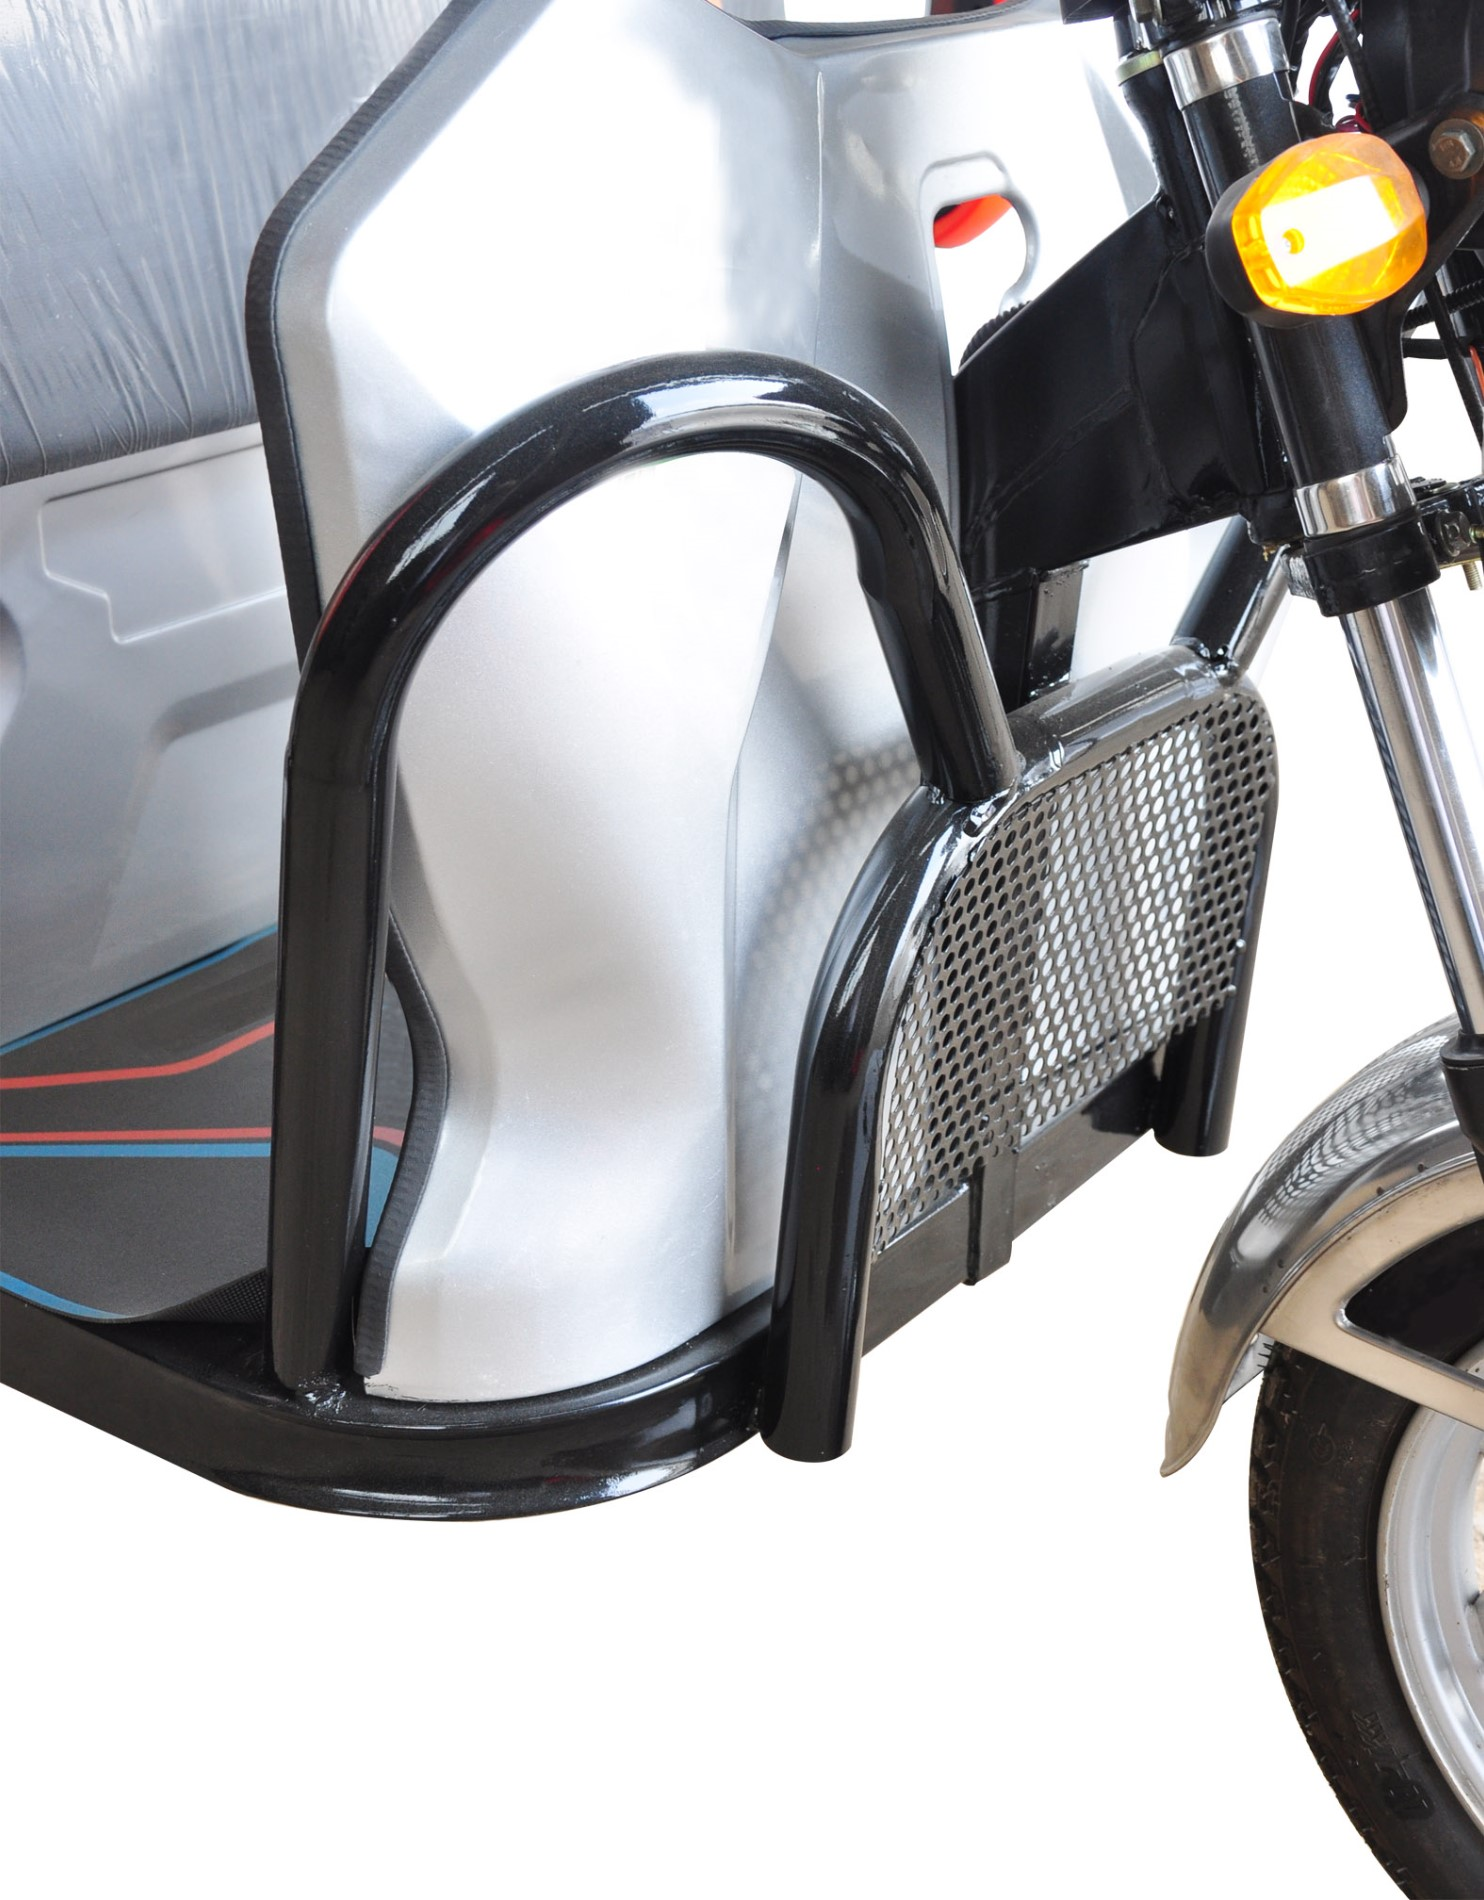 High quality 2 Seats Cargo and passenger Use Electric Trike Quotes,China 2 Seats Cargo and passenger Use Electric Trike Factory,2 Seats Cargo and passenger Use Electric Trike Purchasing